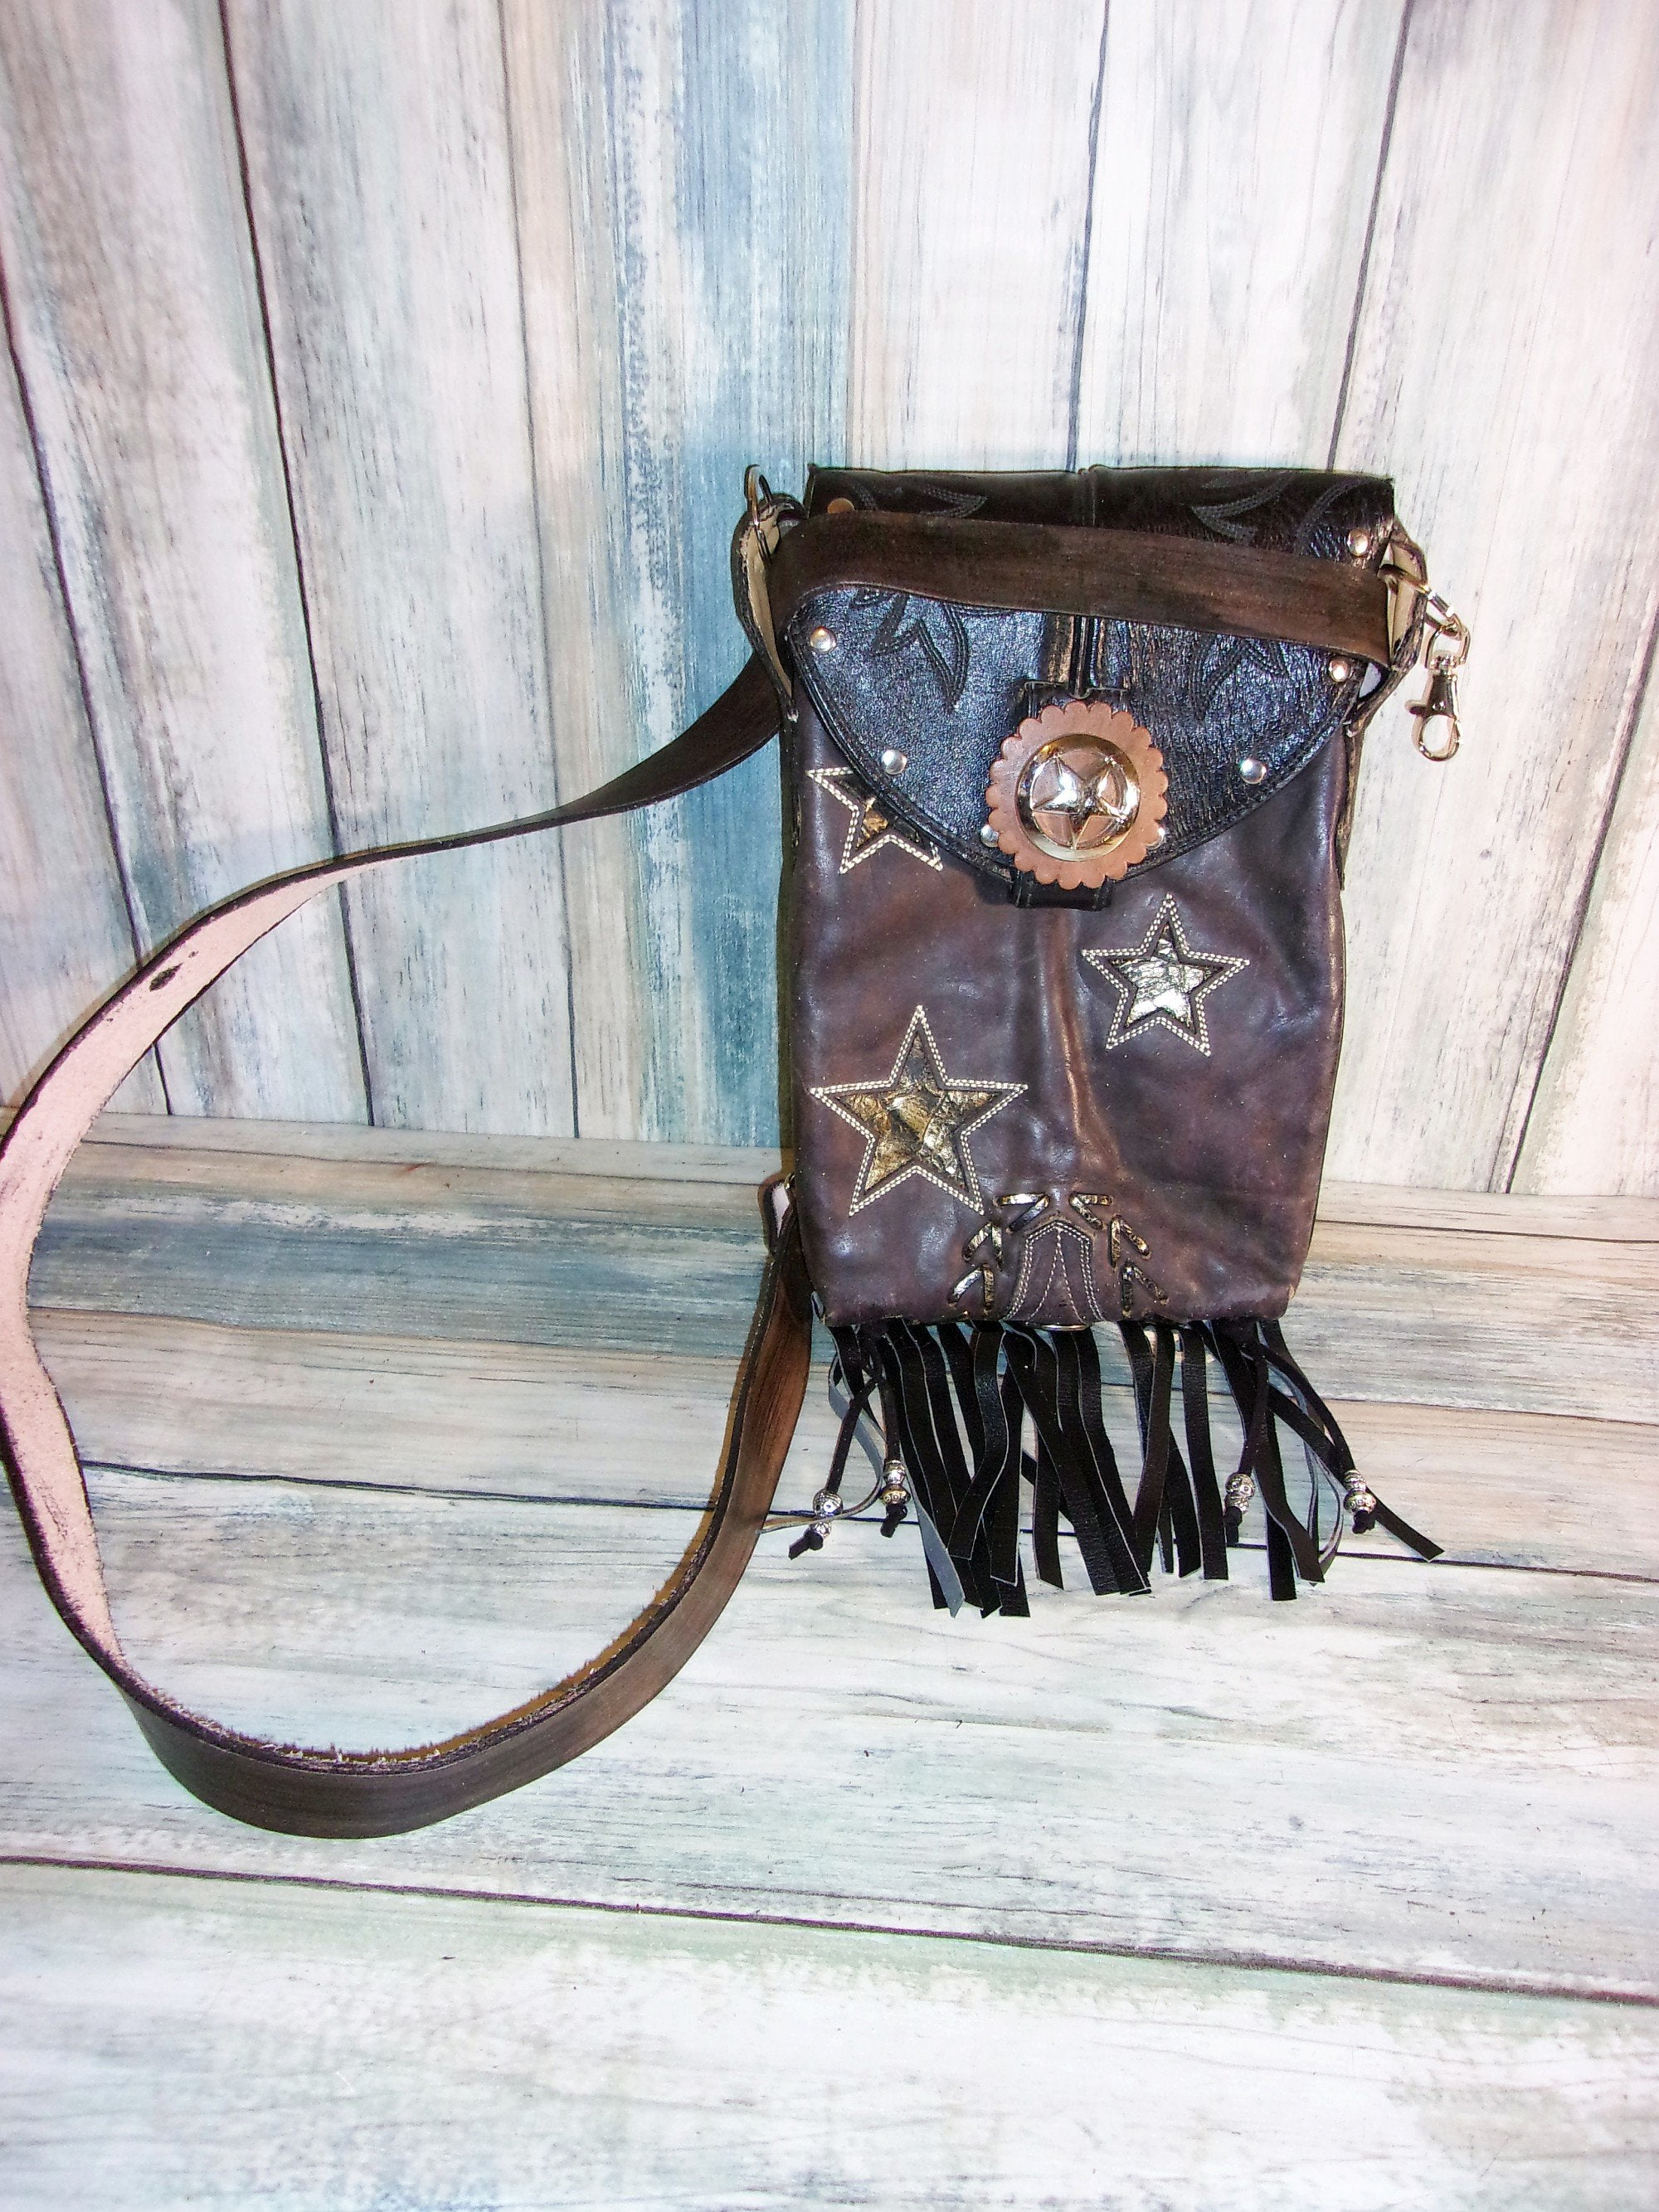 Thigh-Tie Cross-Body Bag with Fringe BB03 - Distinctive Western Handbags, Purses and Totes